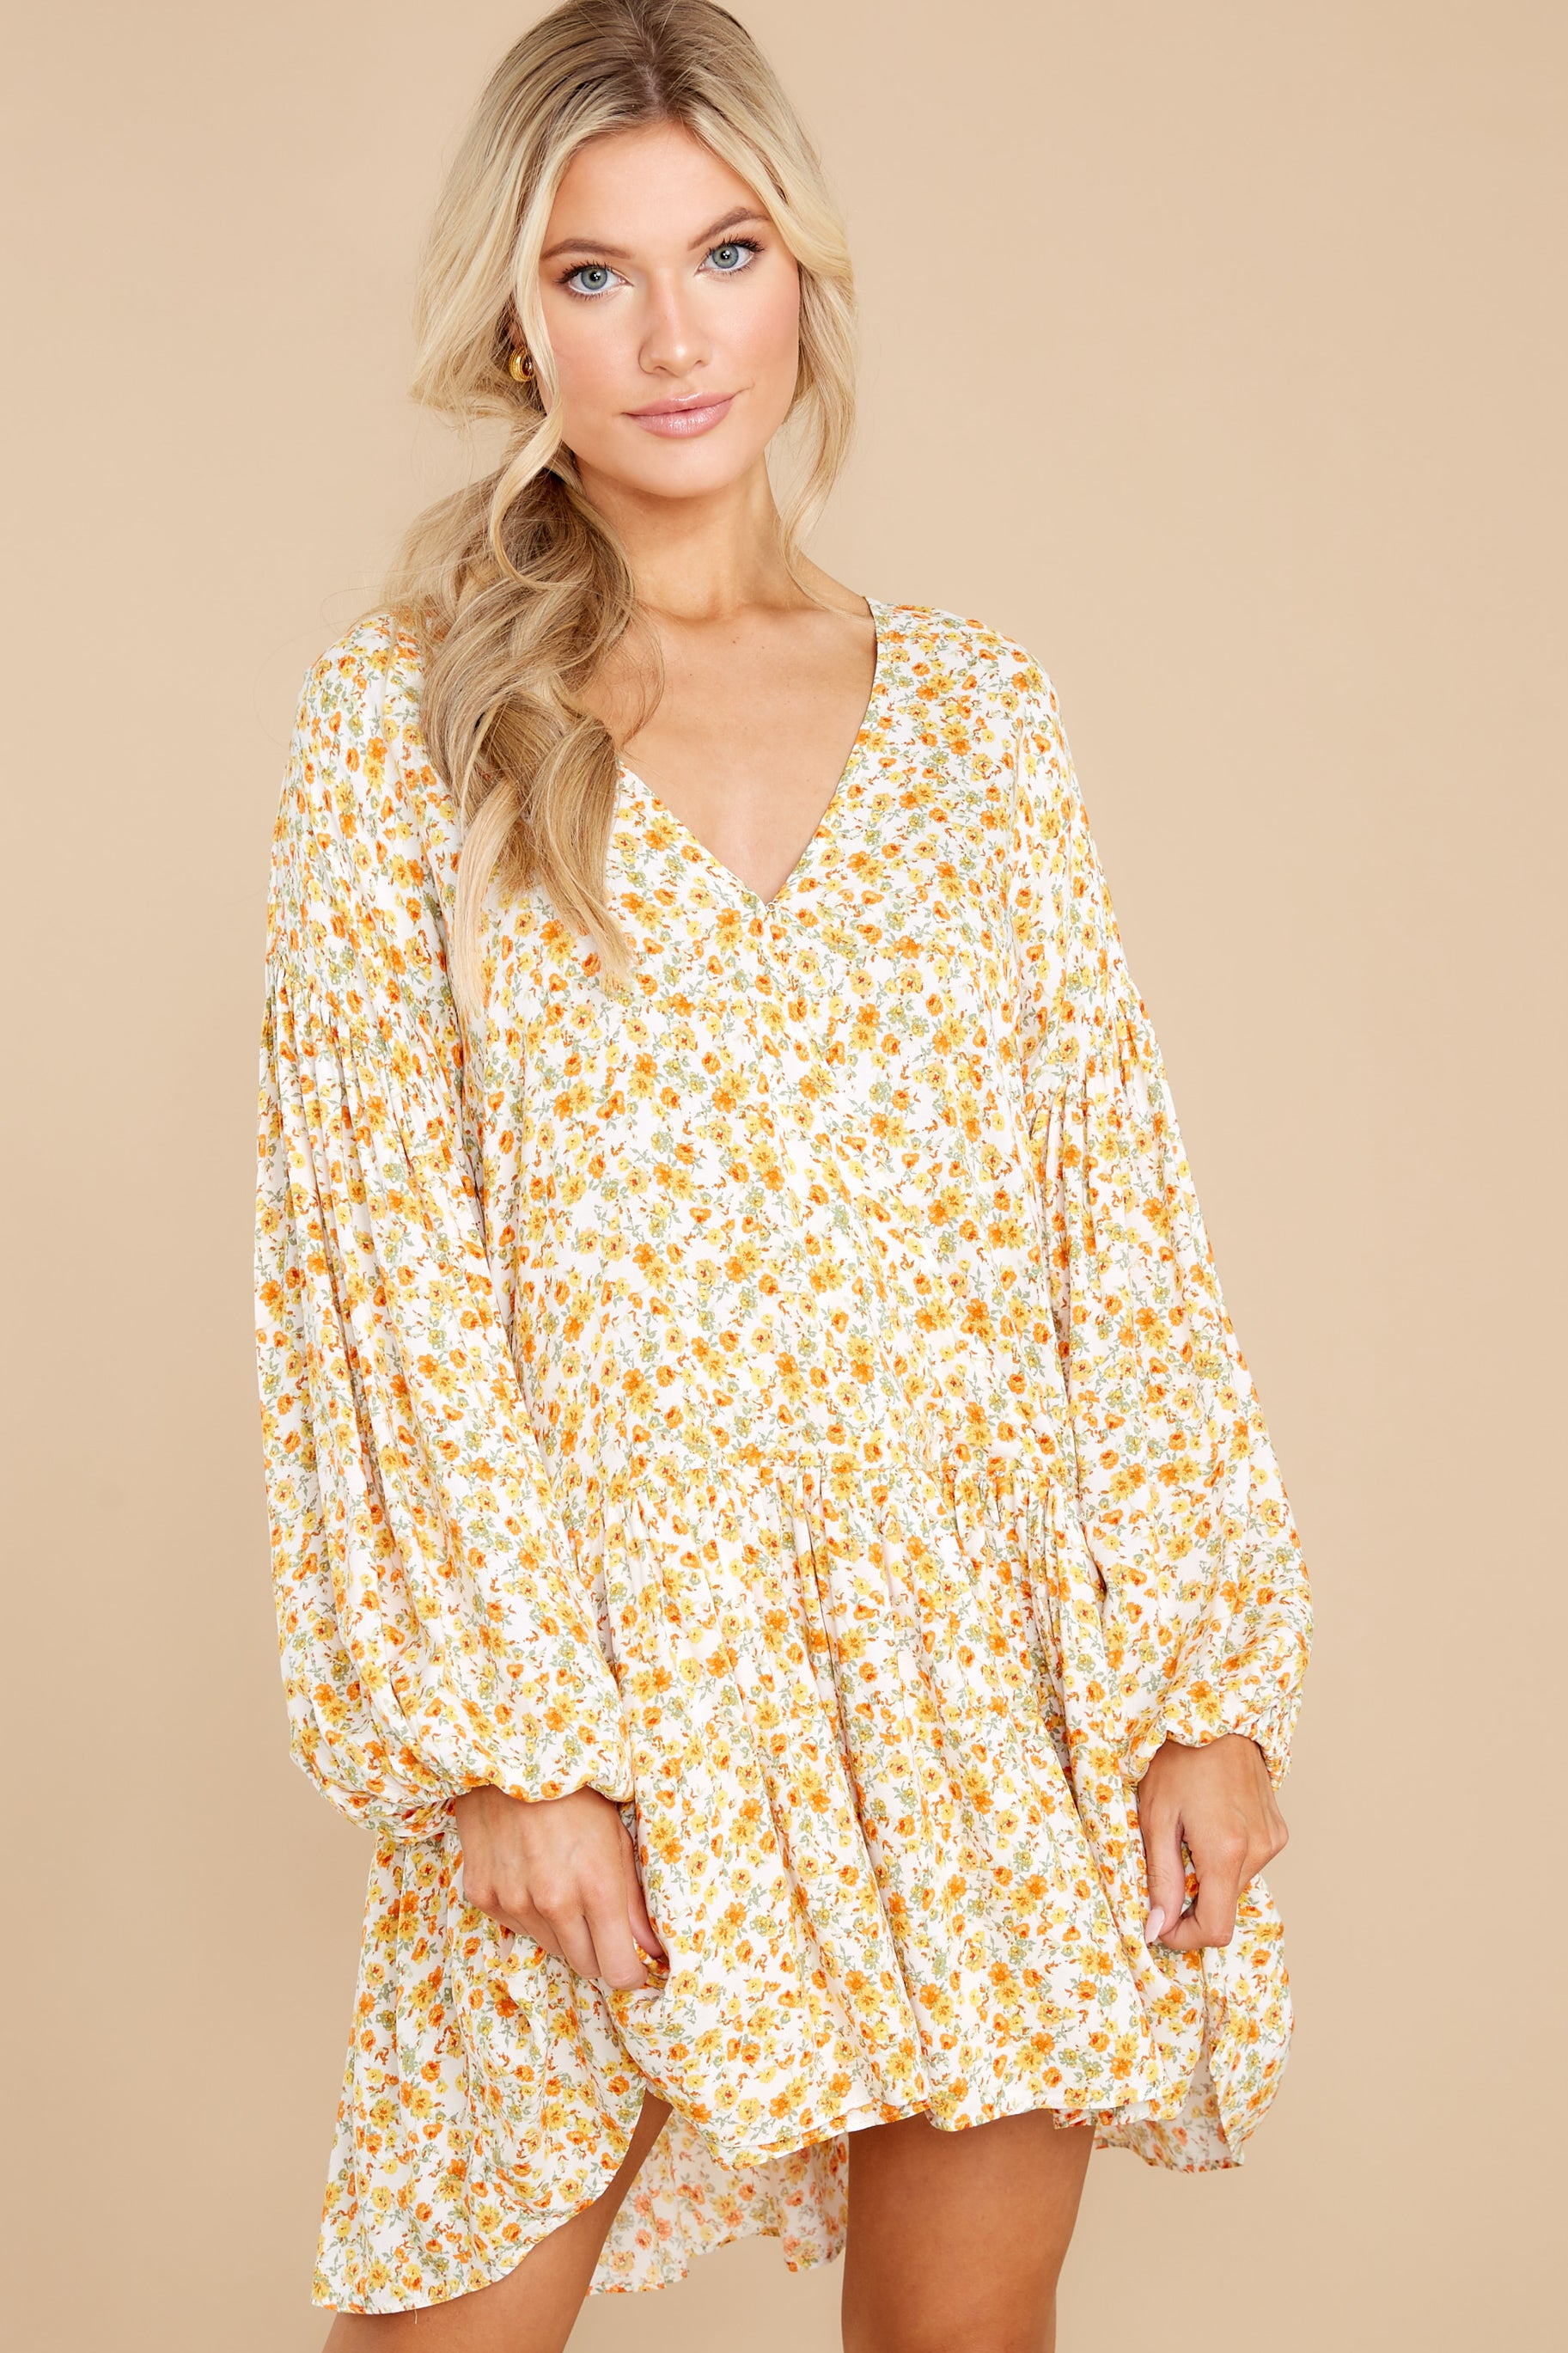 6 Far Away Places Yellow And Orange Floral Print Dress at reddress.com